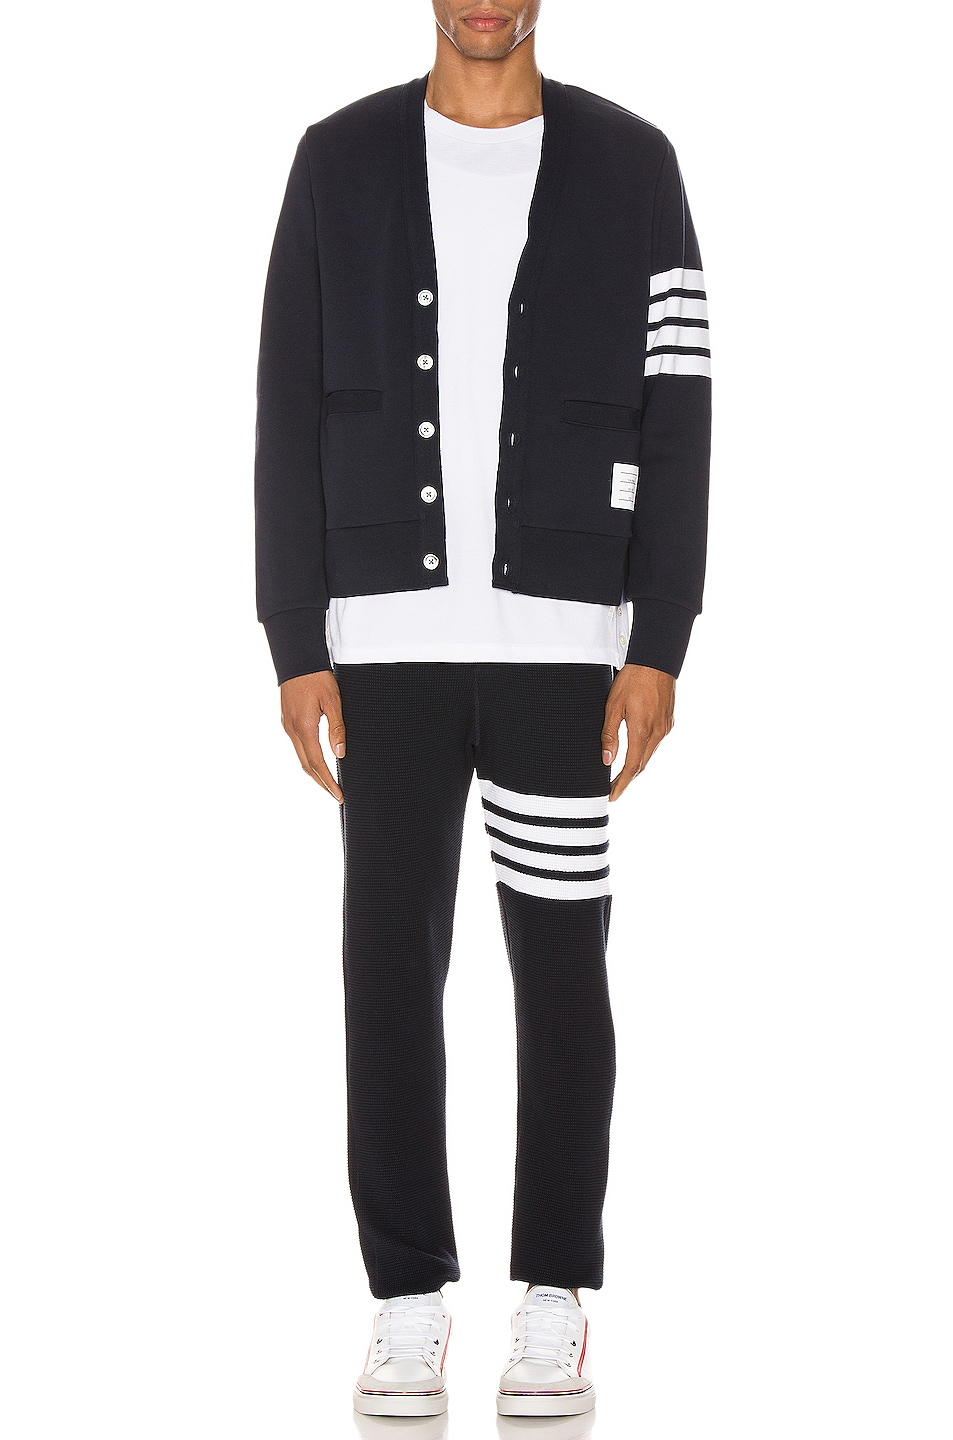 Image 5 of Thom Browne 4 Bar Long Johns Pants in Navy